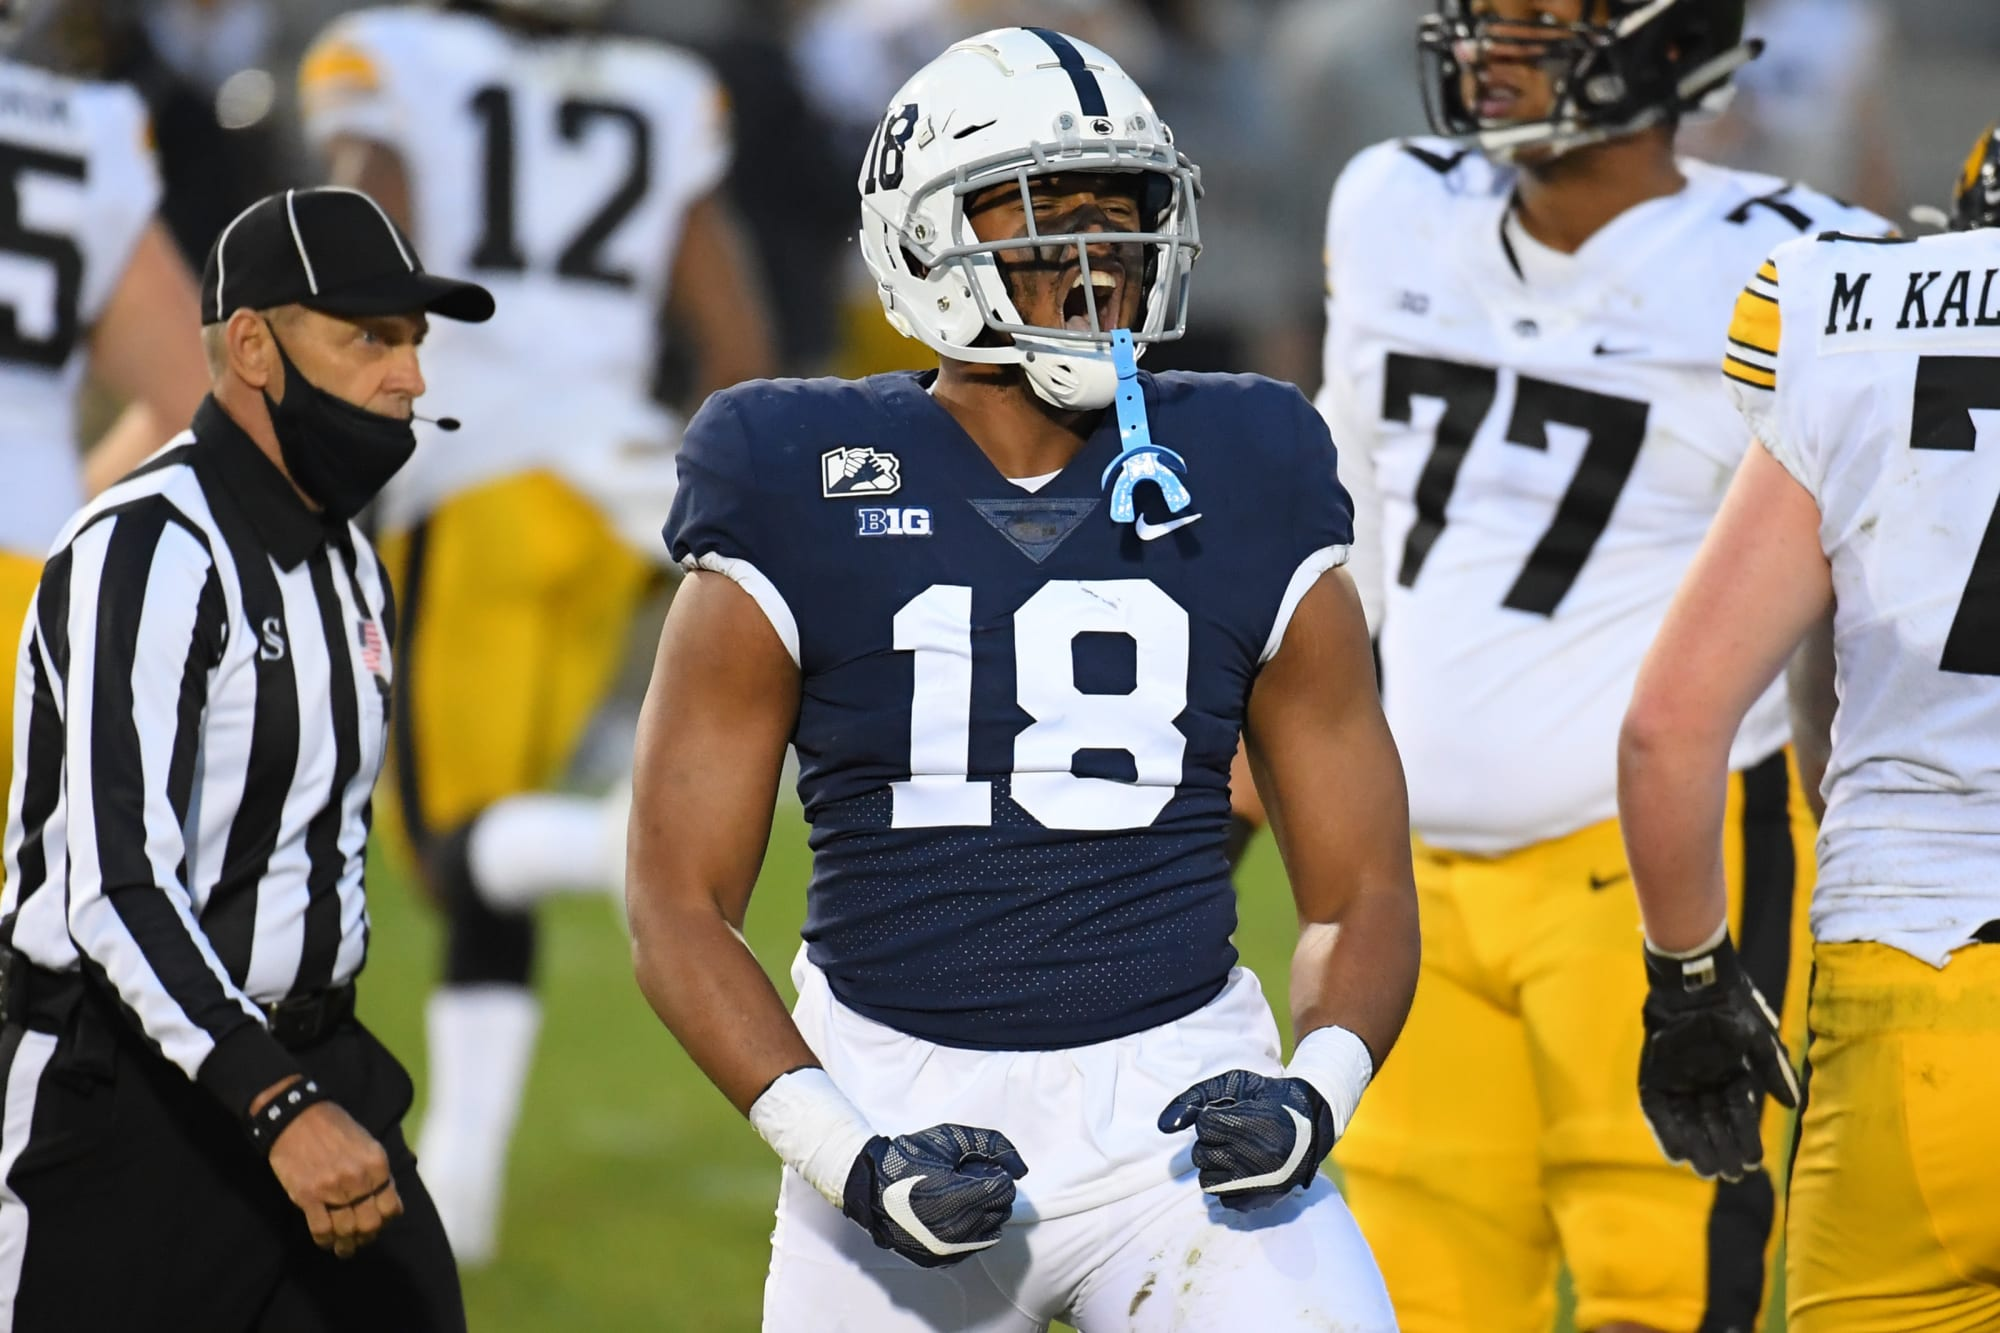 2021 NFL Draft: 5 under-the-radar steals from Day 3